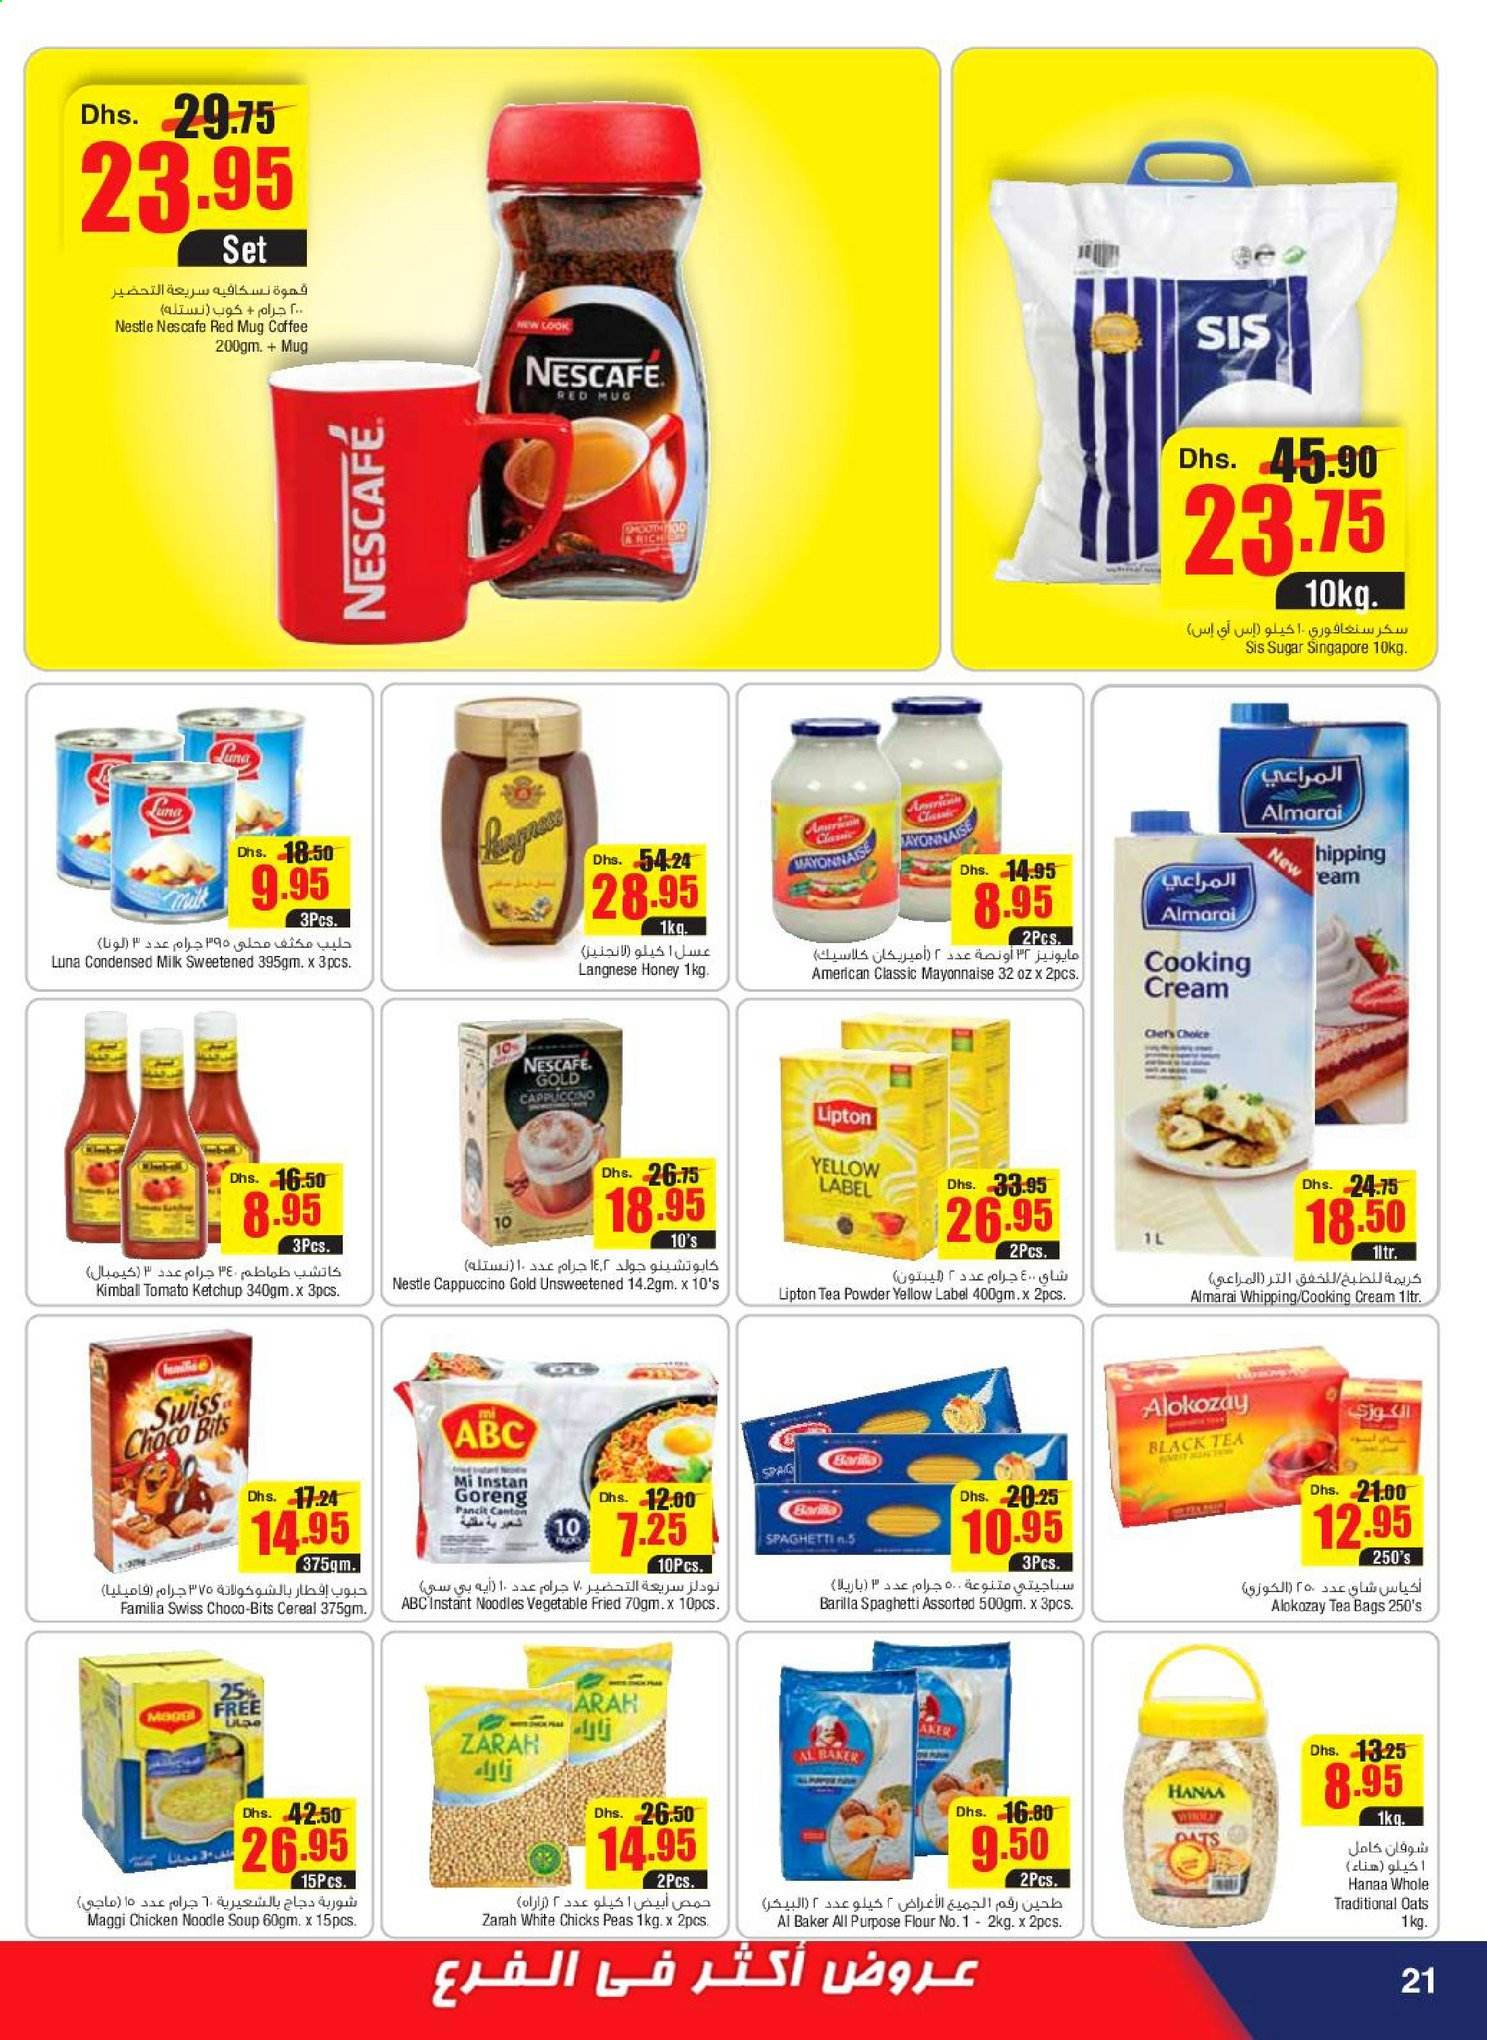 <retailer> - <MM/DD/YYYY - MM/DD/YYYY> - Sales products - ,<products from flyers>. Page 21